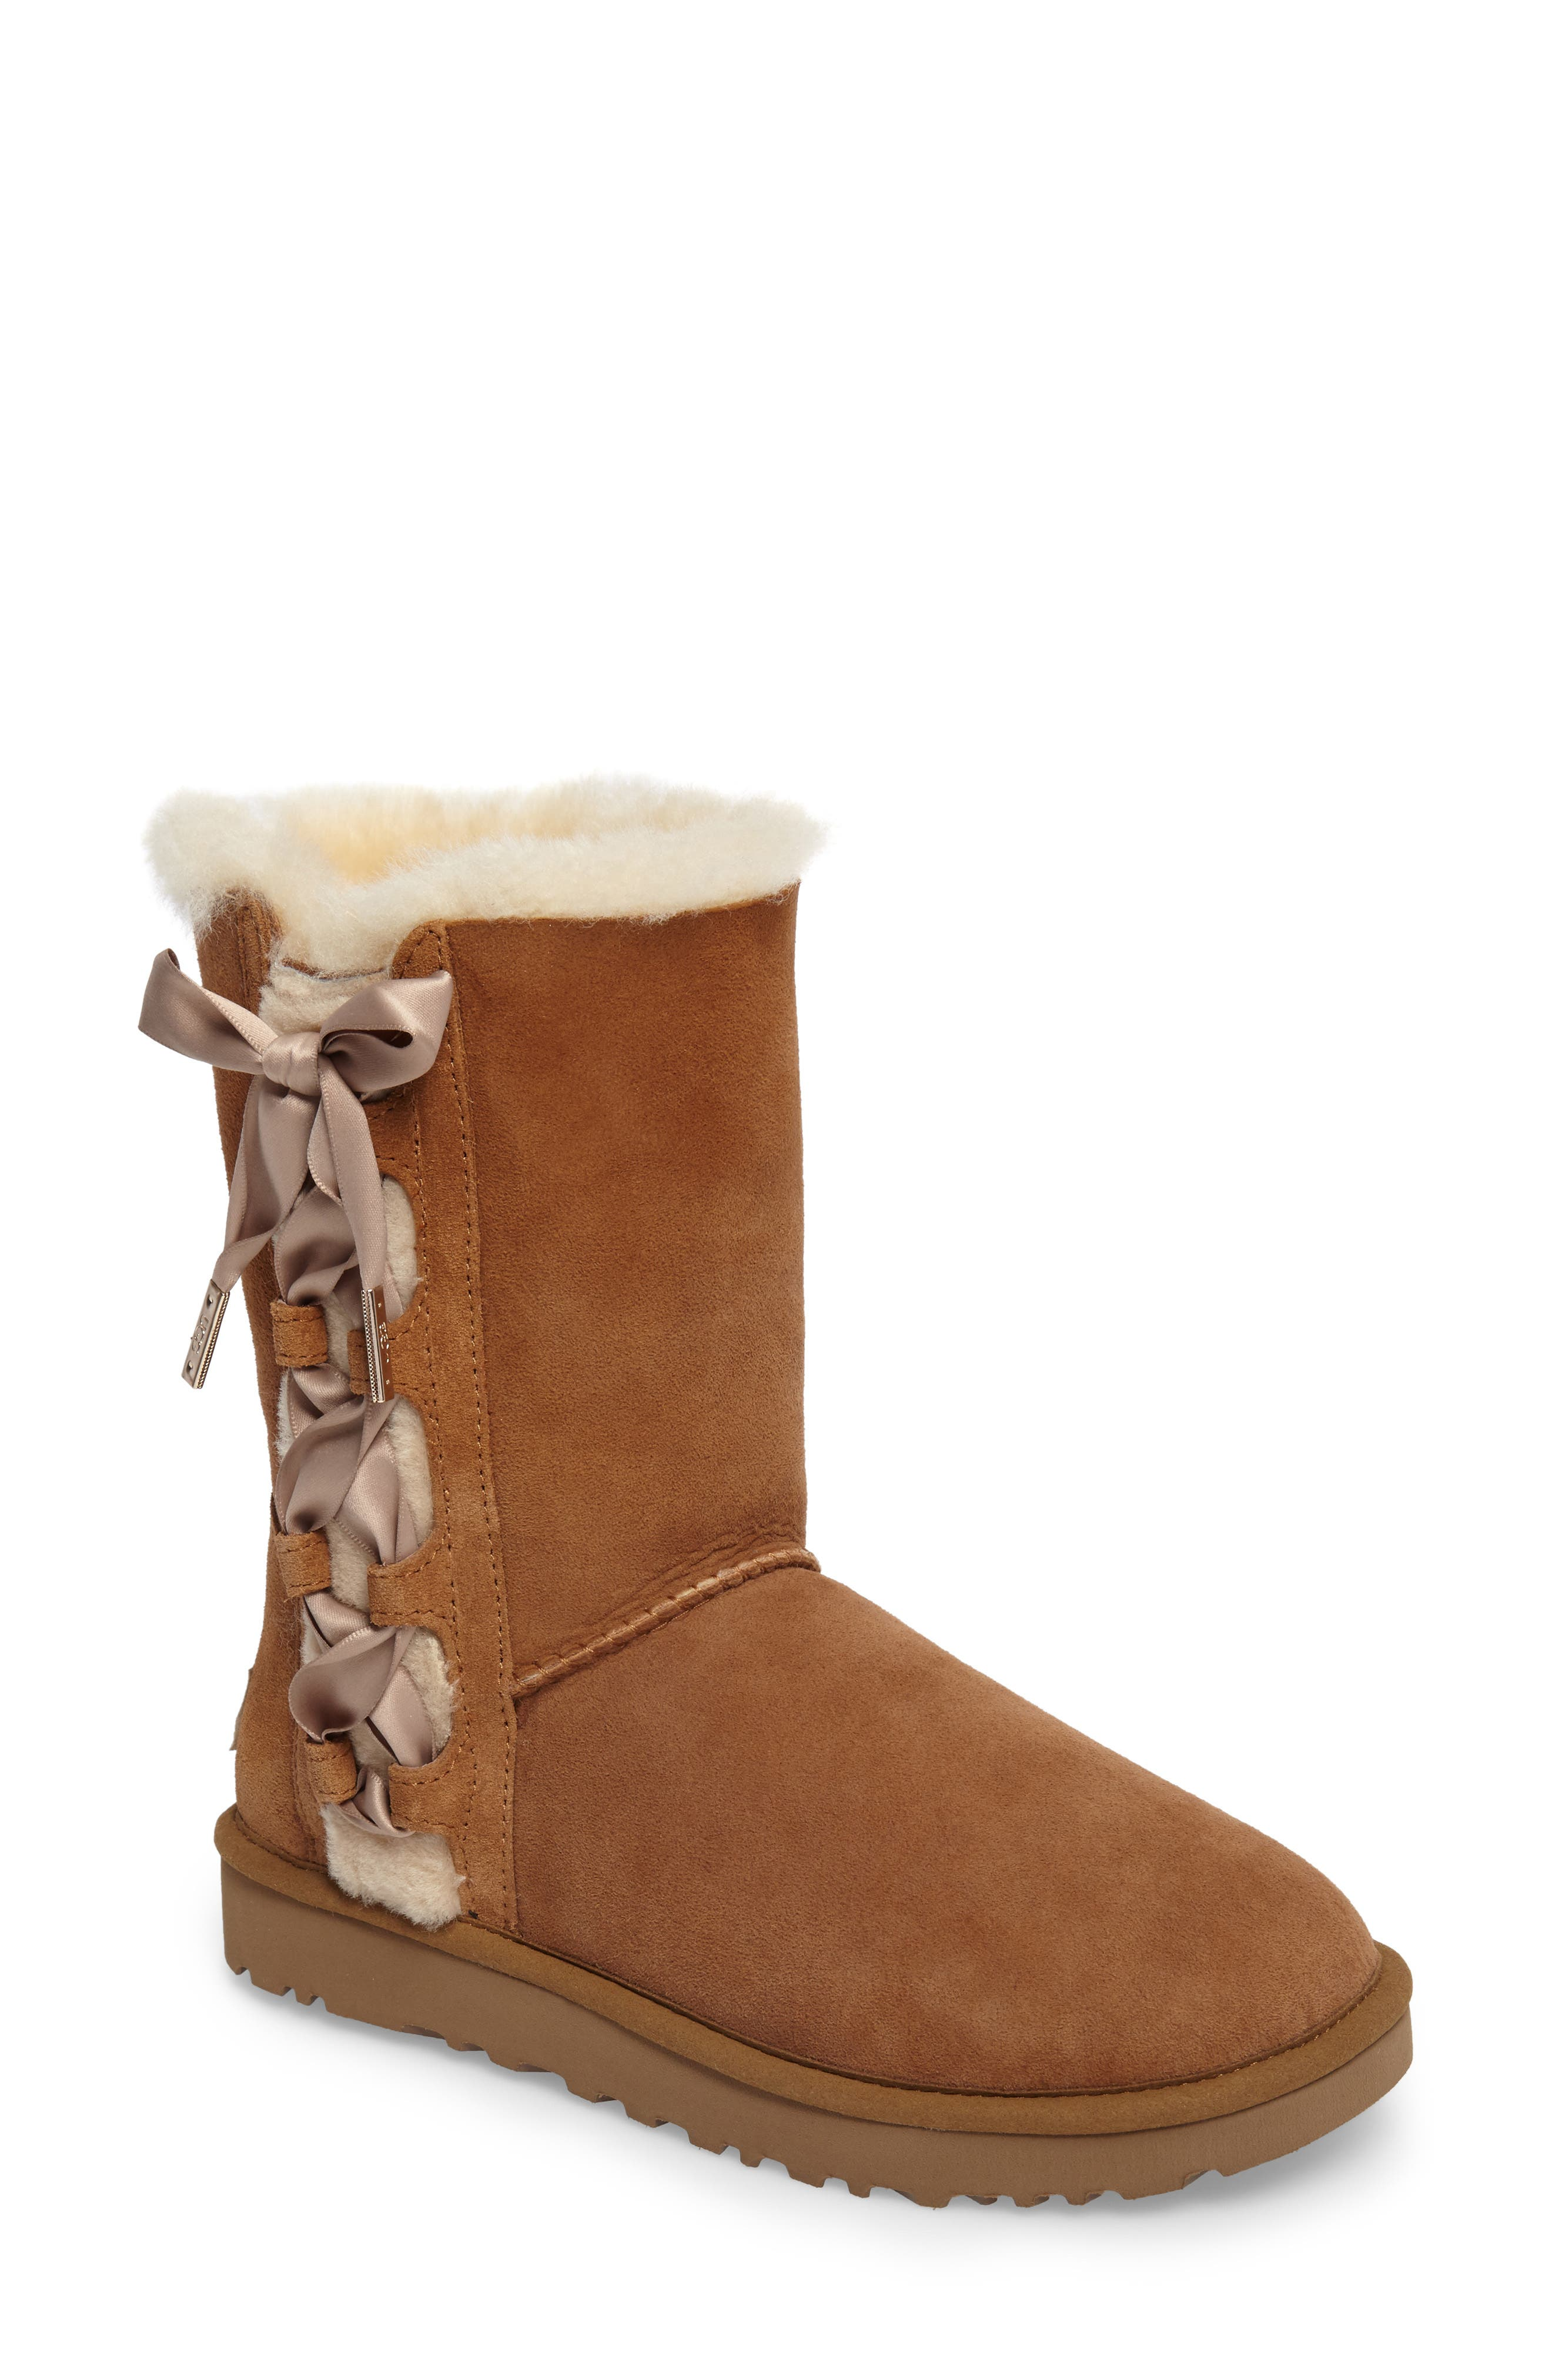 Pala Boot,                             Main thumbnail 1, color,                             Chestnut Suede